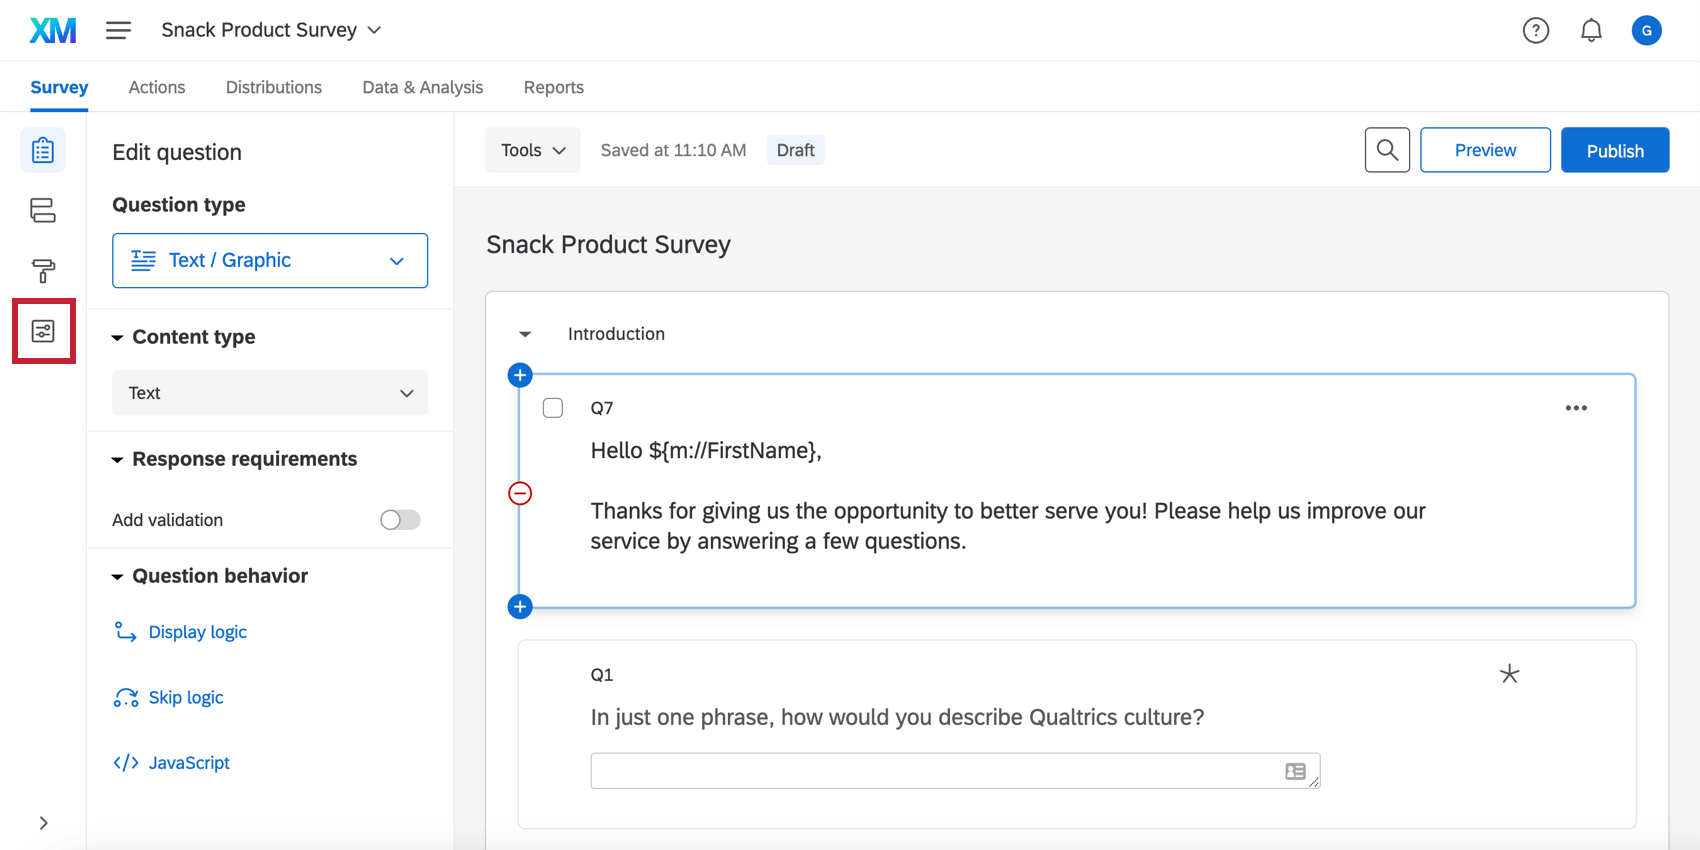 Survey options in the survey editor